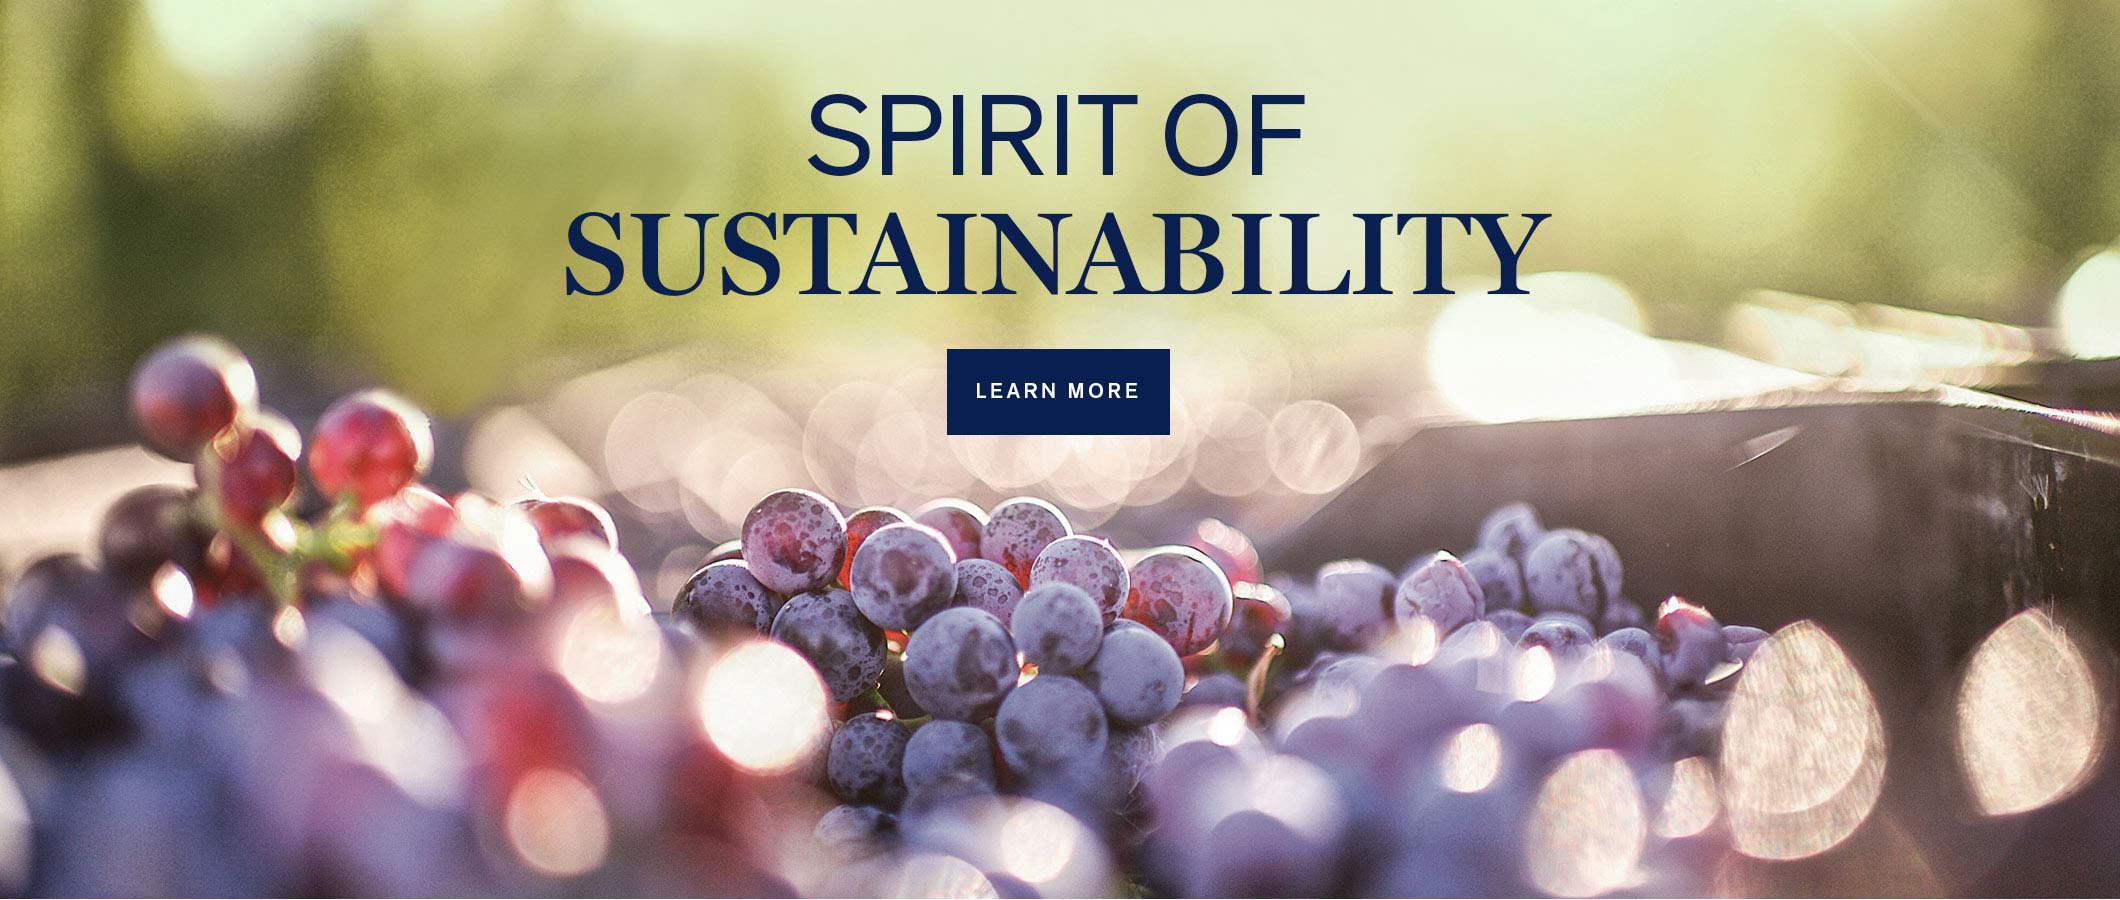 Spirit of Sustainabilty.  LEARN MORE